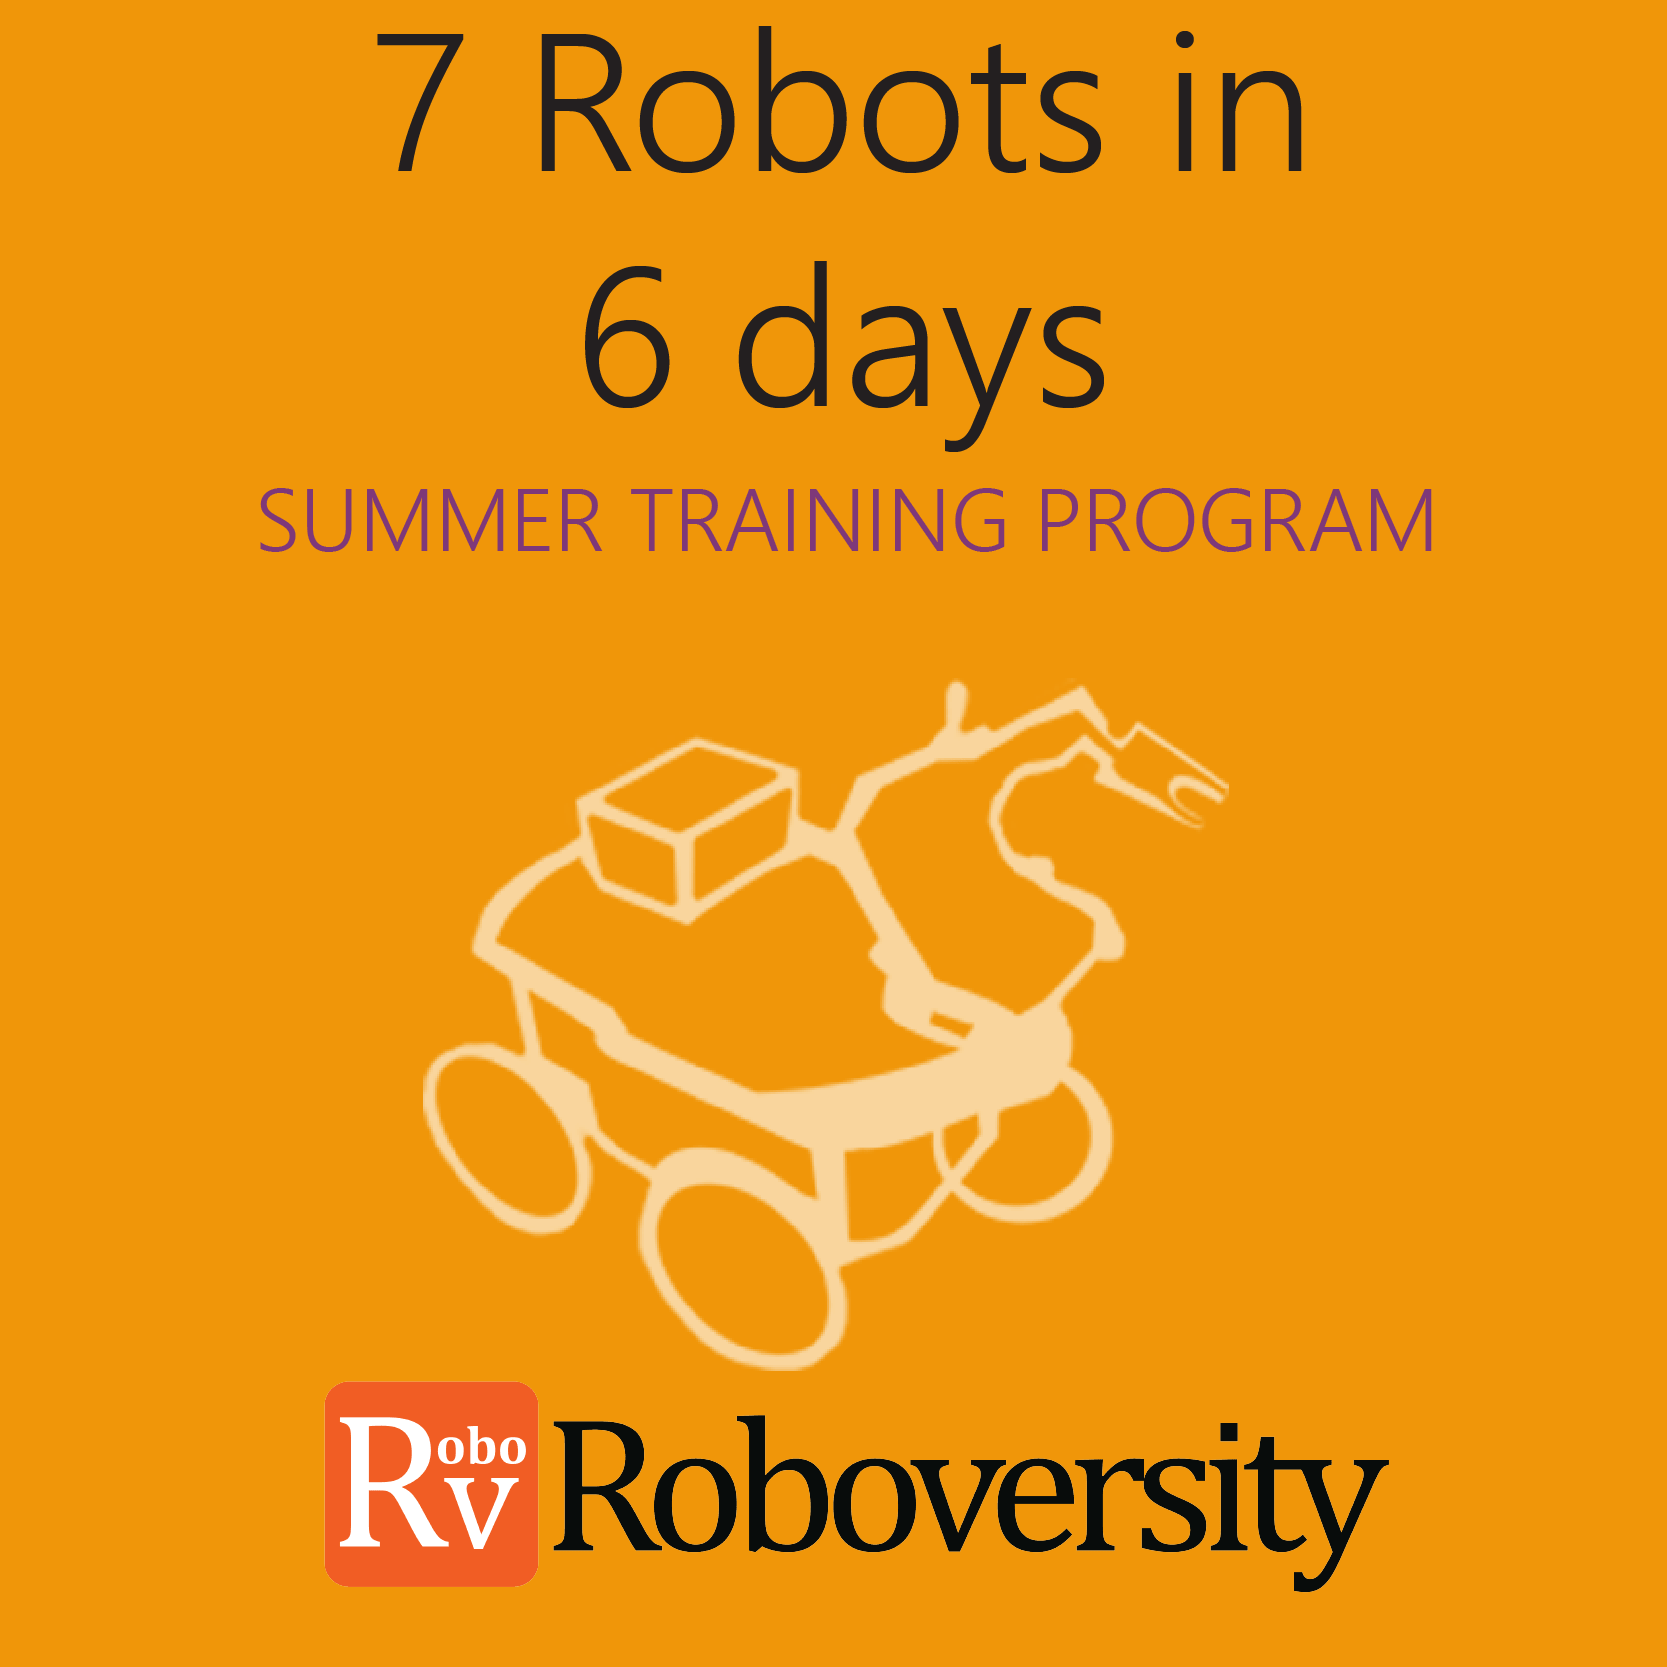 Summer Training Program in Robotics - 7 Robots in 6 Days  at Skyfi Labs Center, Marathahalli